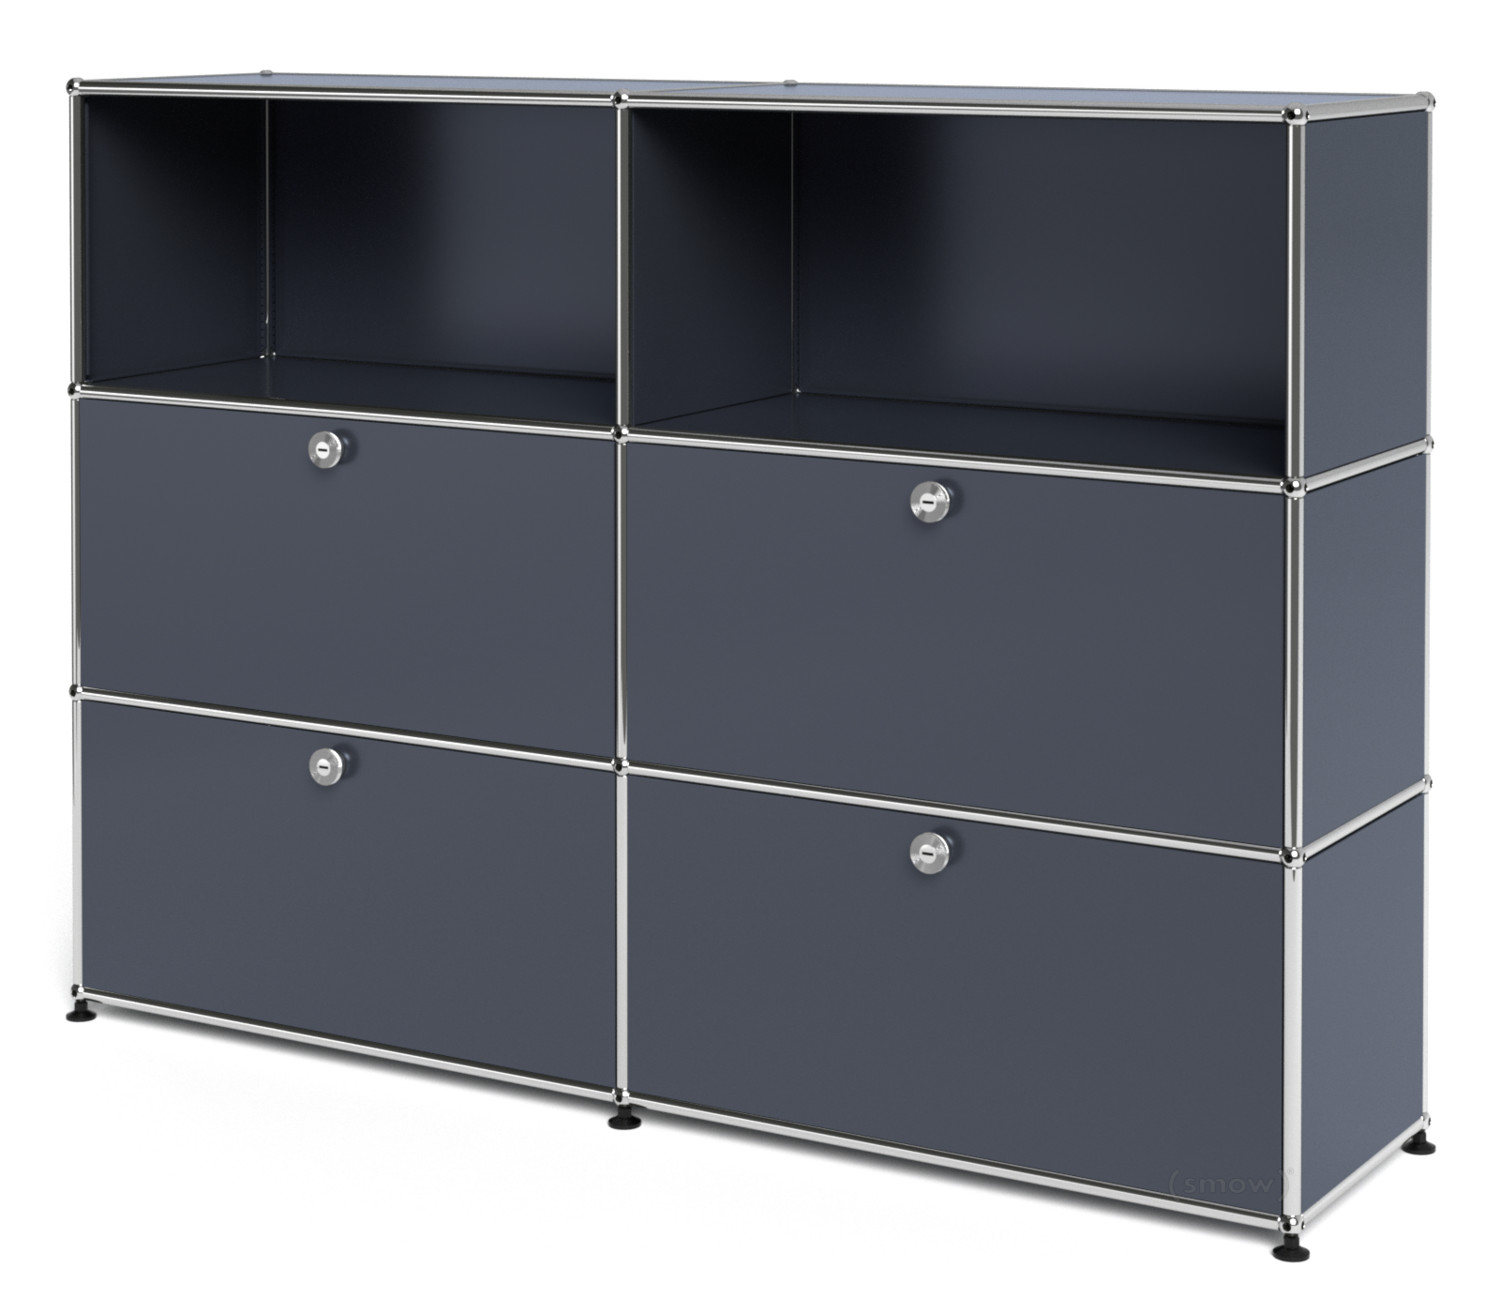 usm haller highboard l mit 4 klappen anthrazitgrau ral 7016 von fritz haller paul sch rer. Black Bedroom Furniture Sets. Home Design Ideas